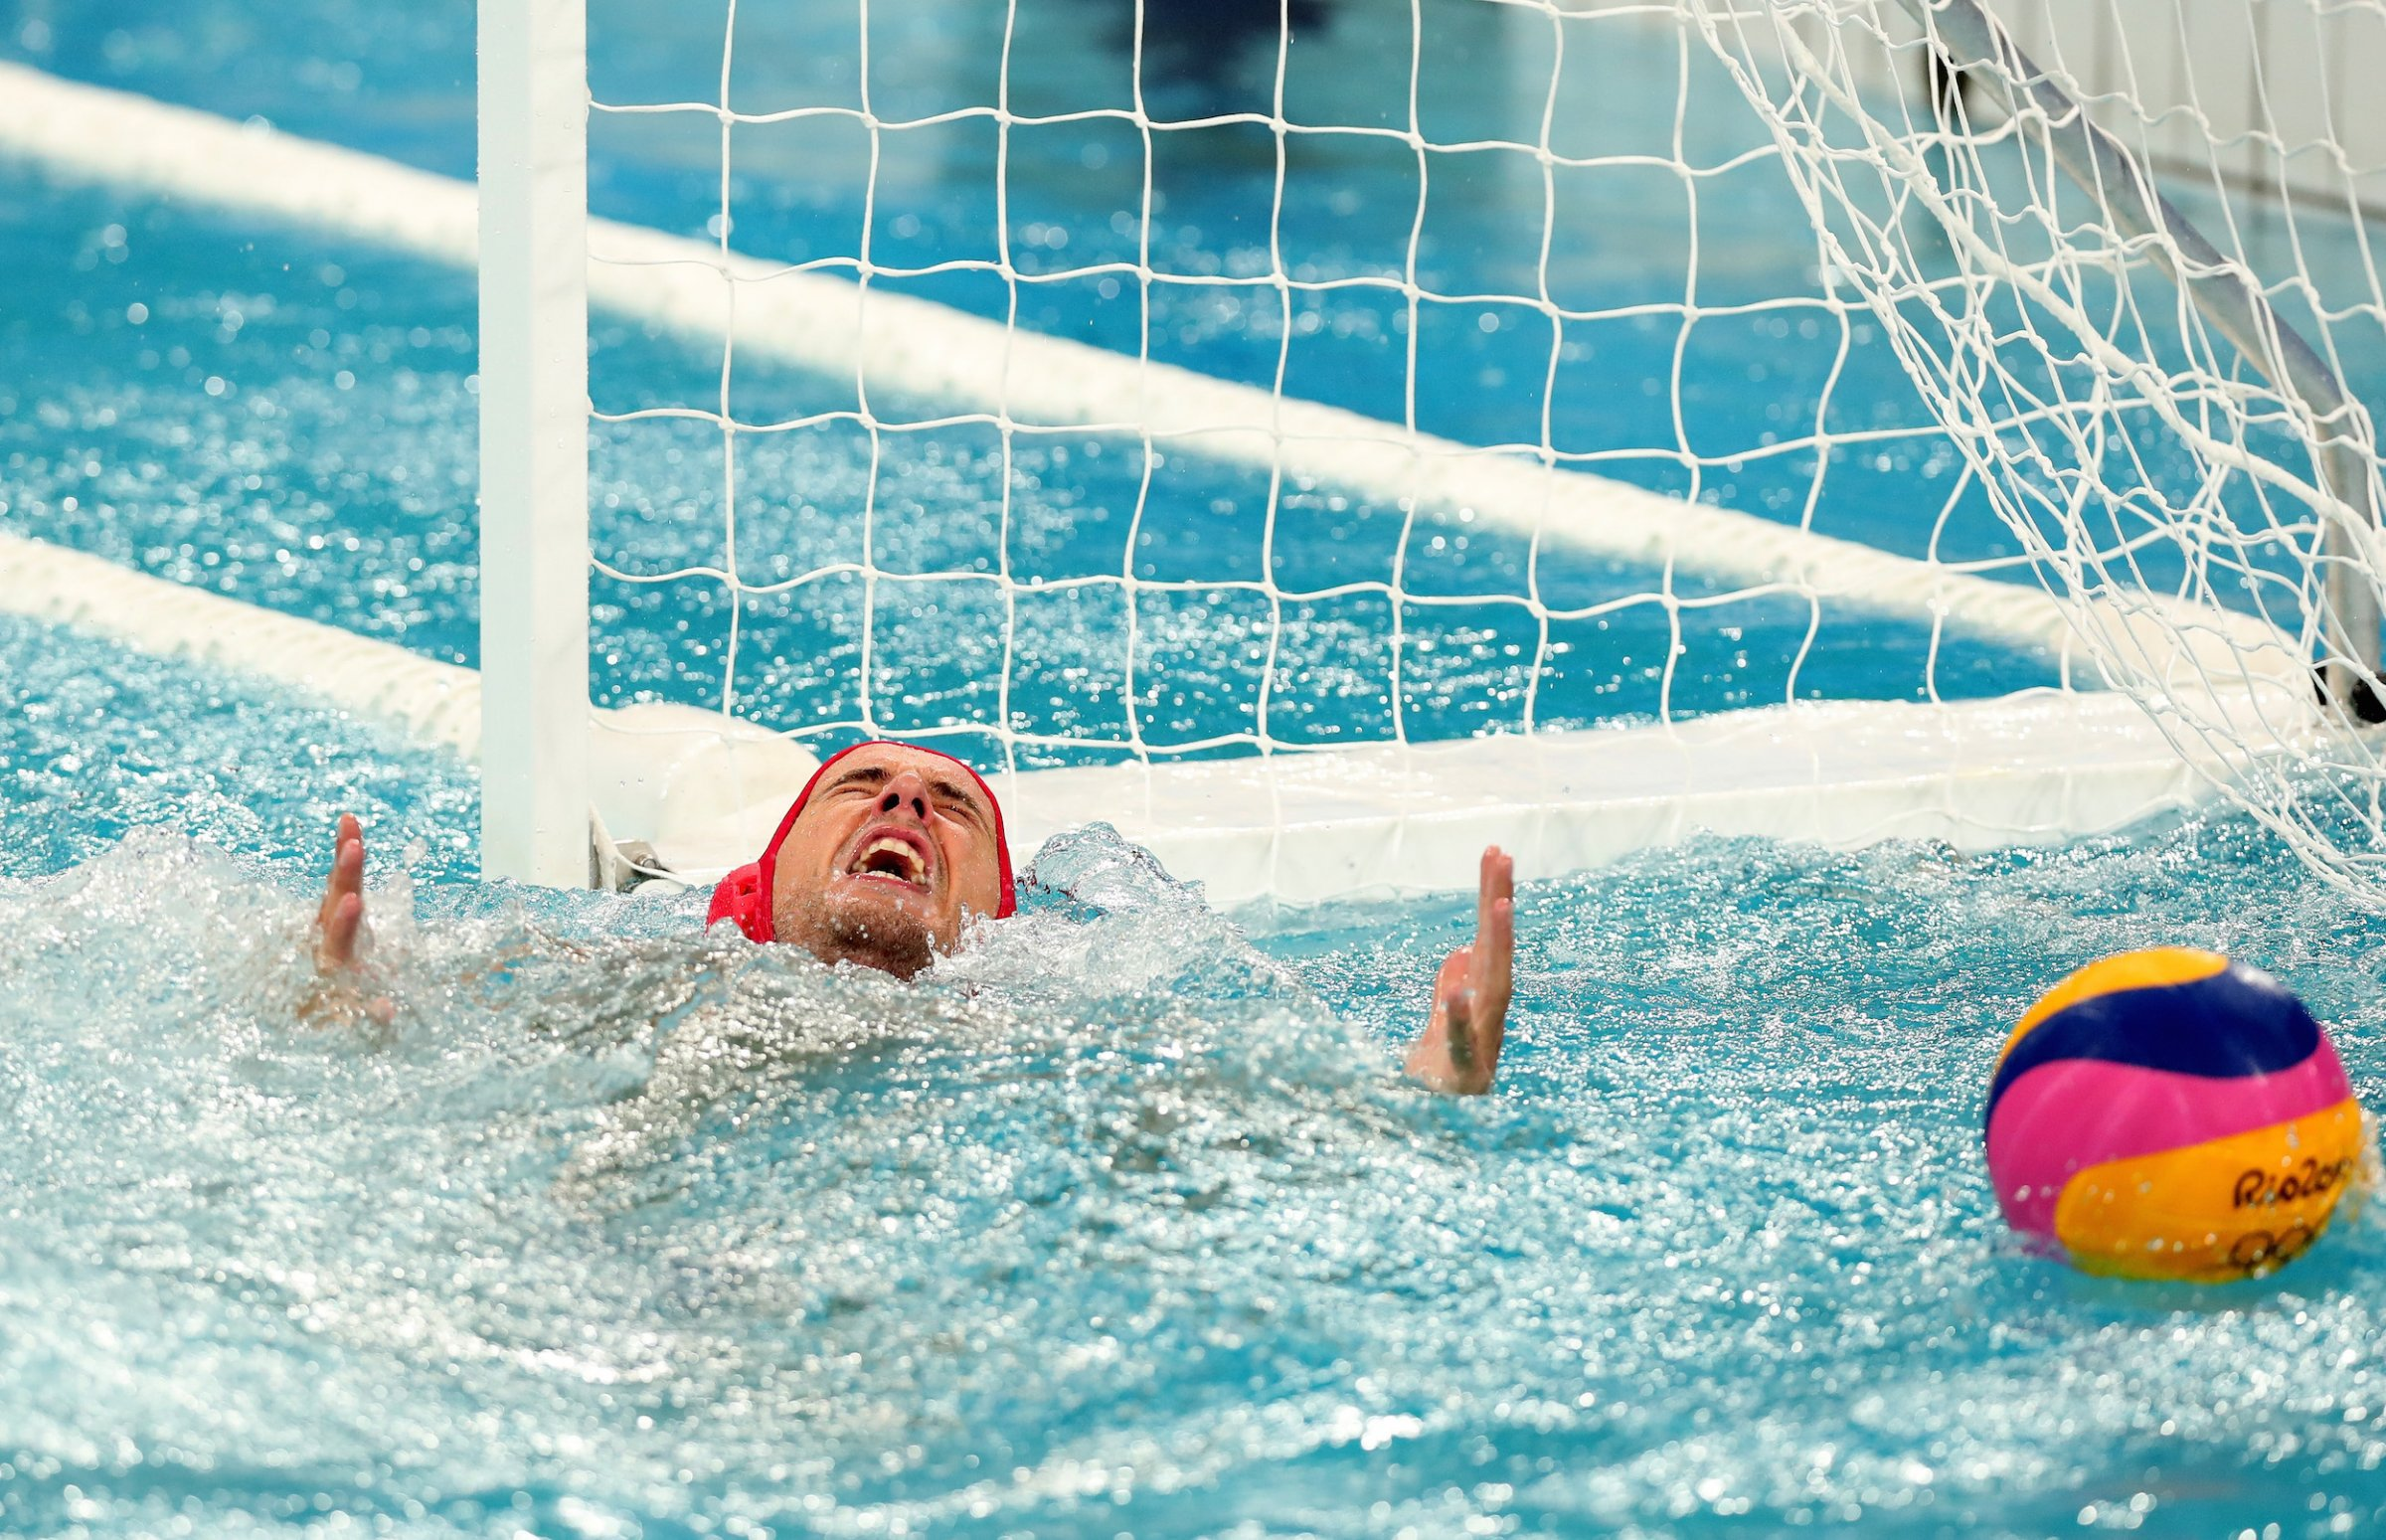 Water Polo Images